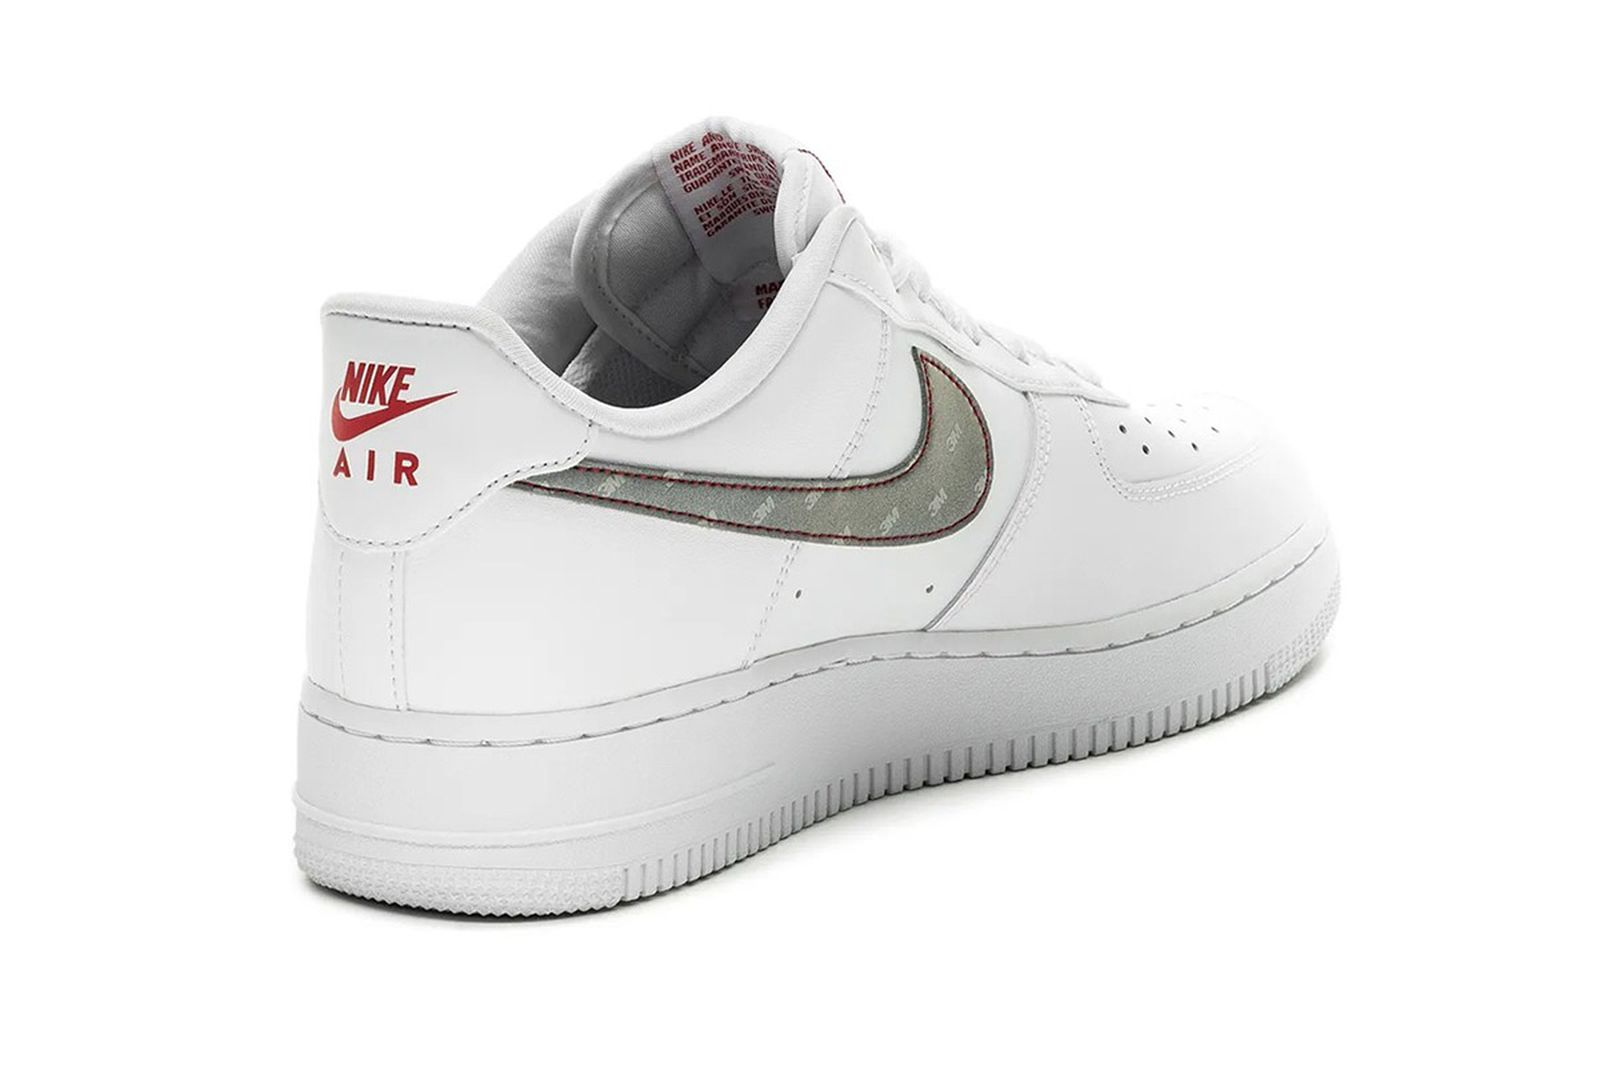 Nike x 3M Silver Air Force 1: Release, Date, Price Info